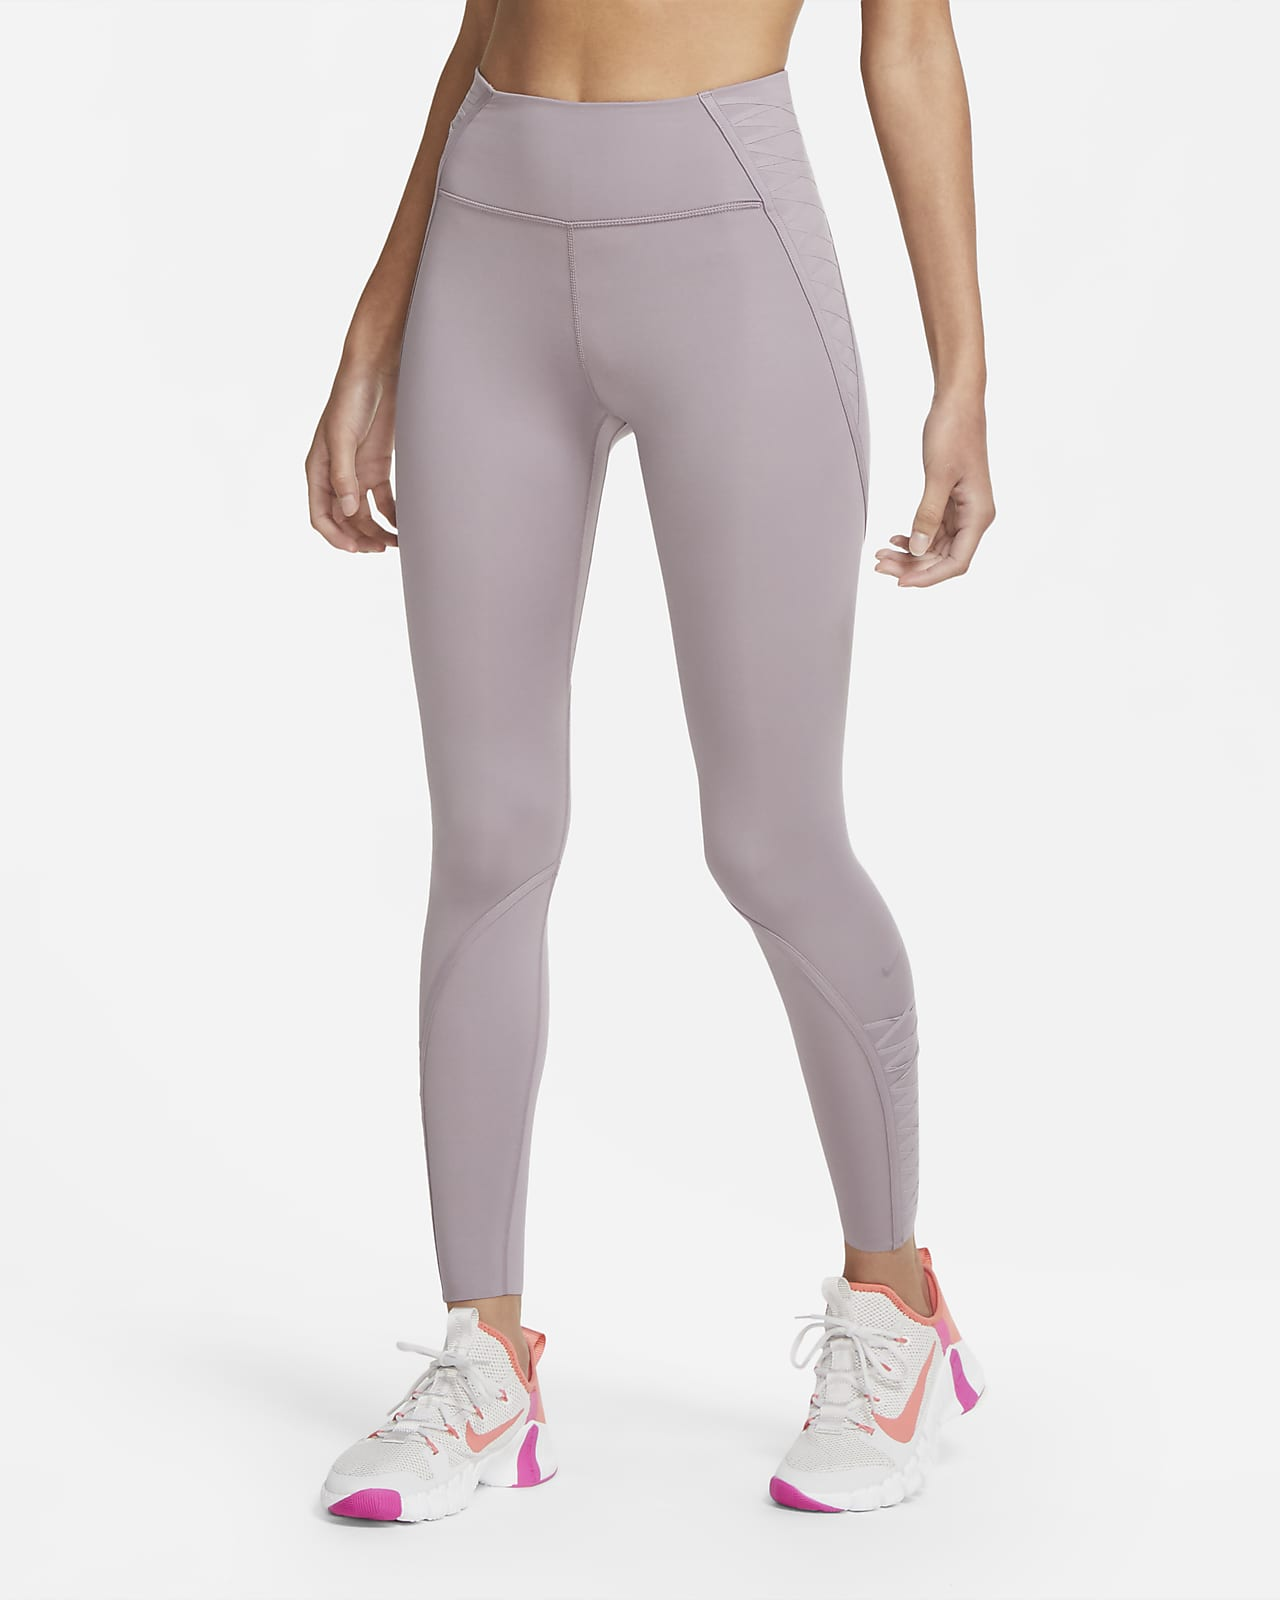 Leggings con cordones 7/8 para mujer Nike One Luxe